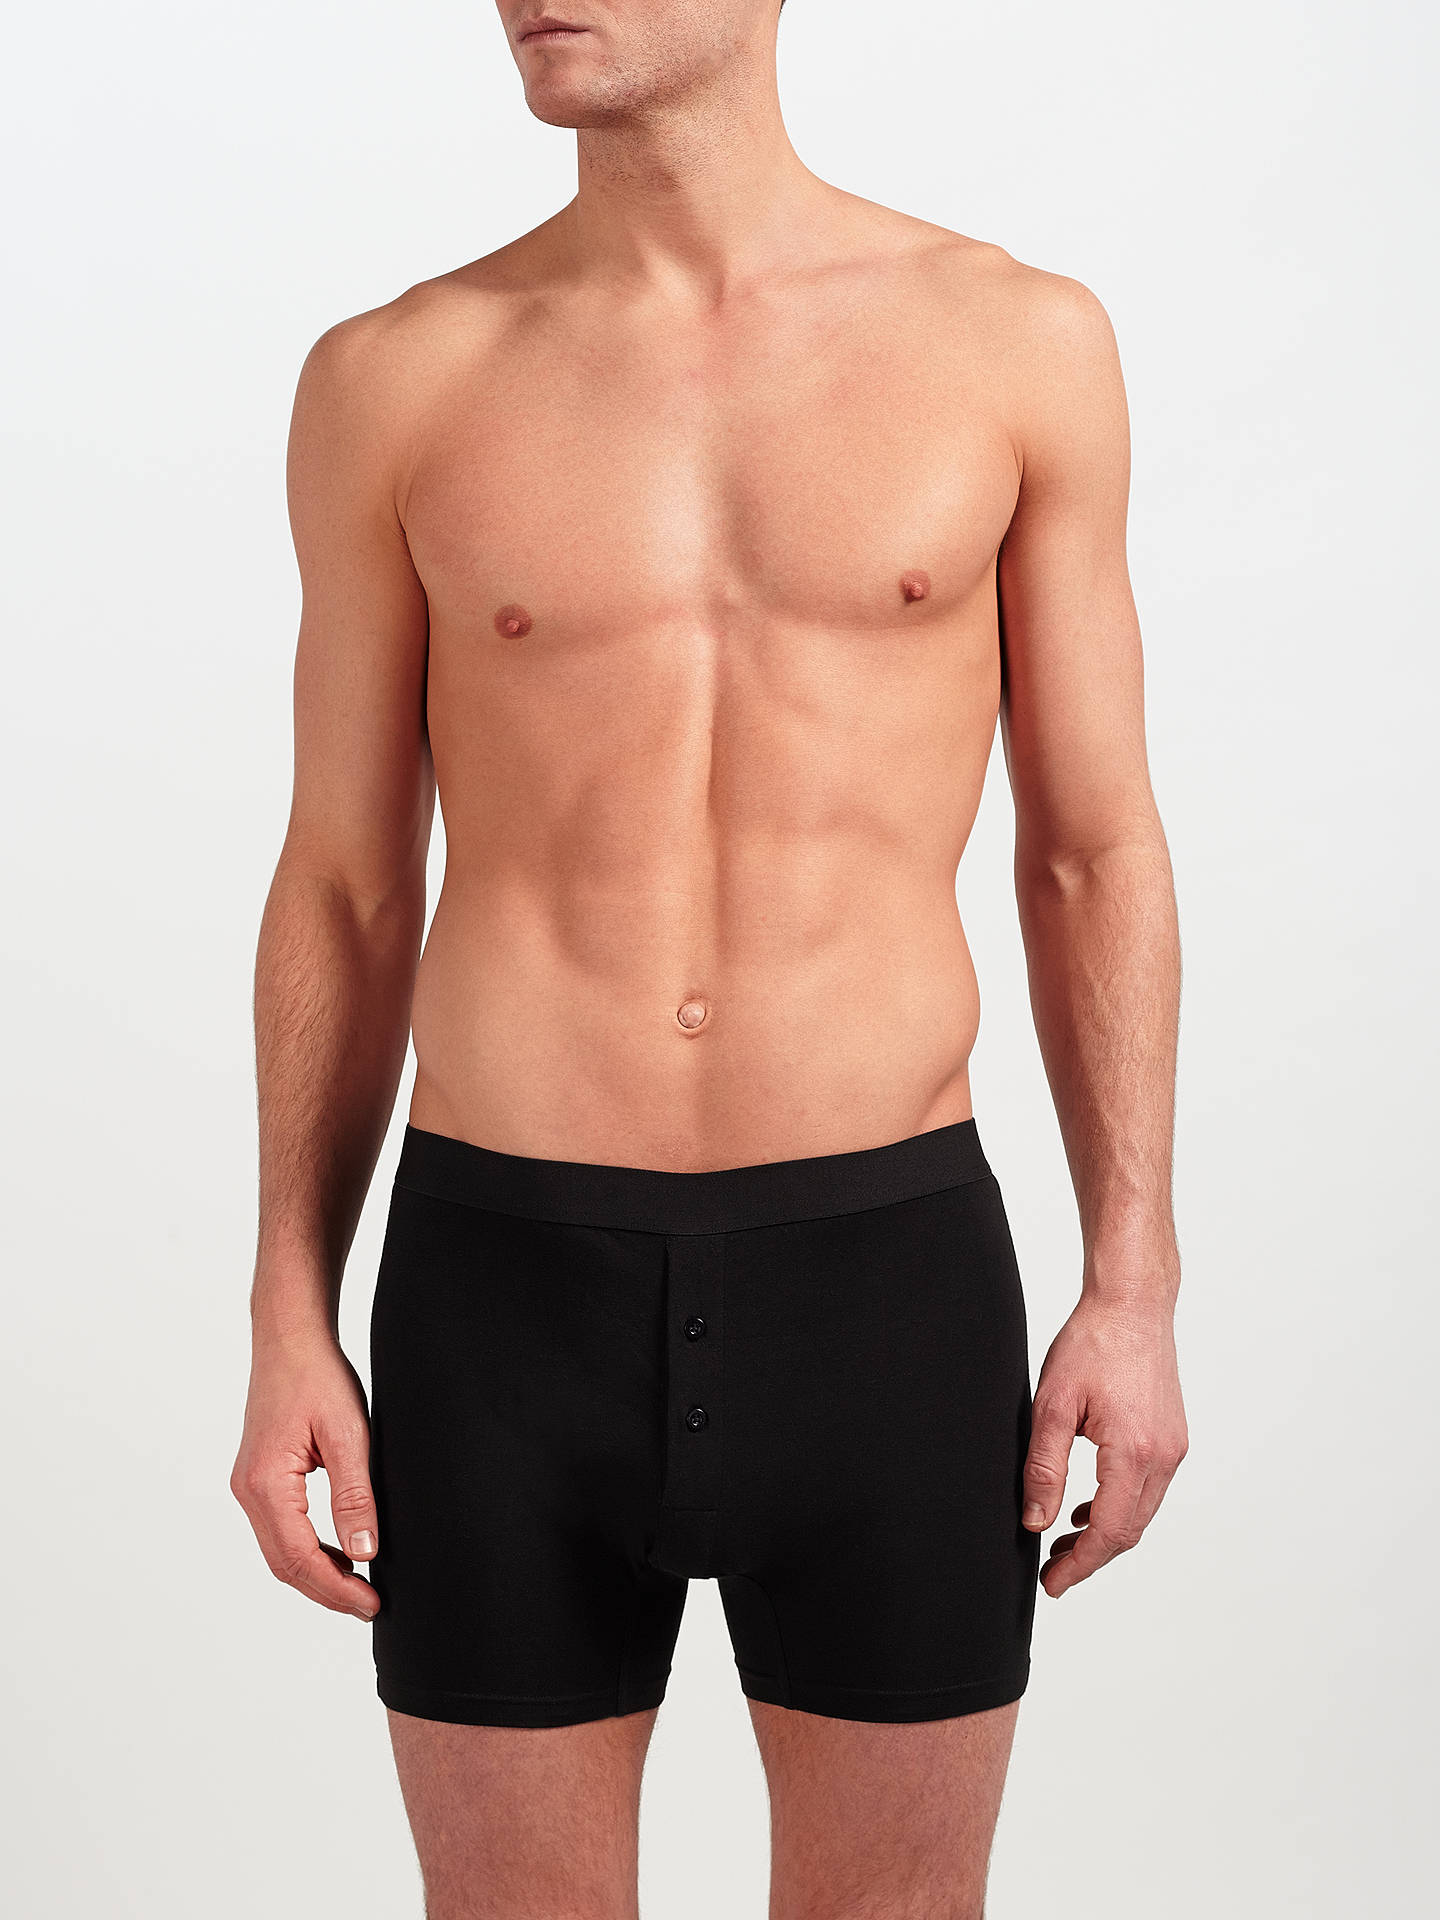 Buy John Lewis & Partners Organic Cotton Button Fly Trunks, Pack of 3, Black/Grey, M Online at johnlewis.com